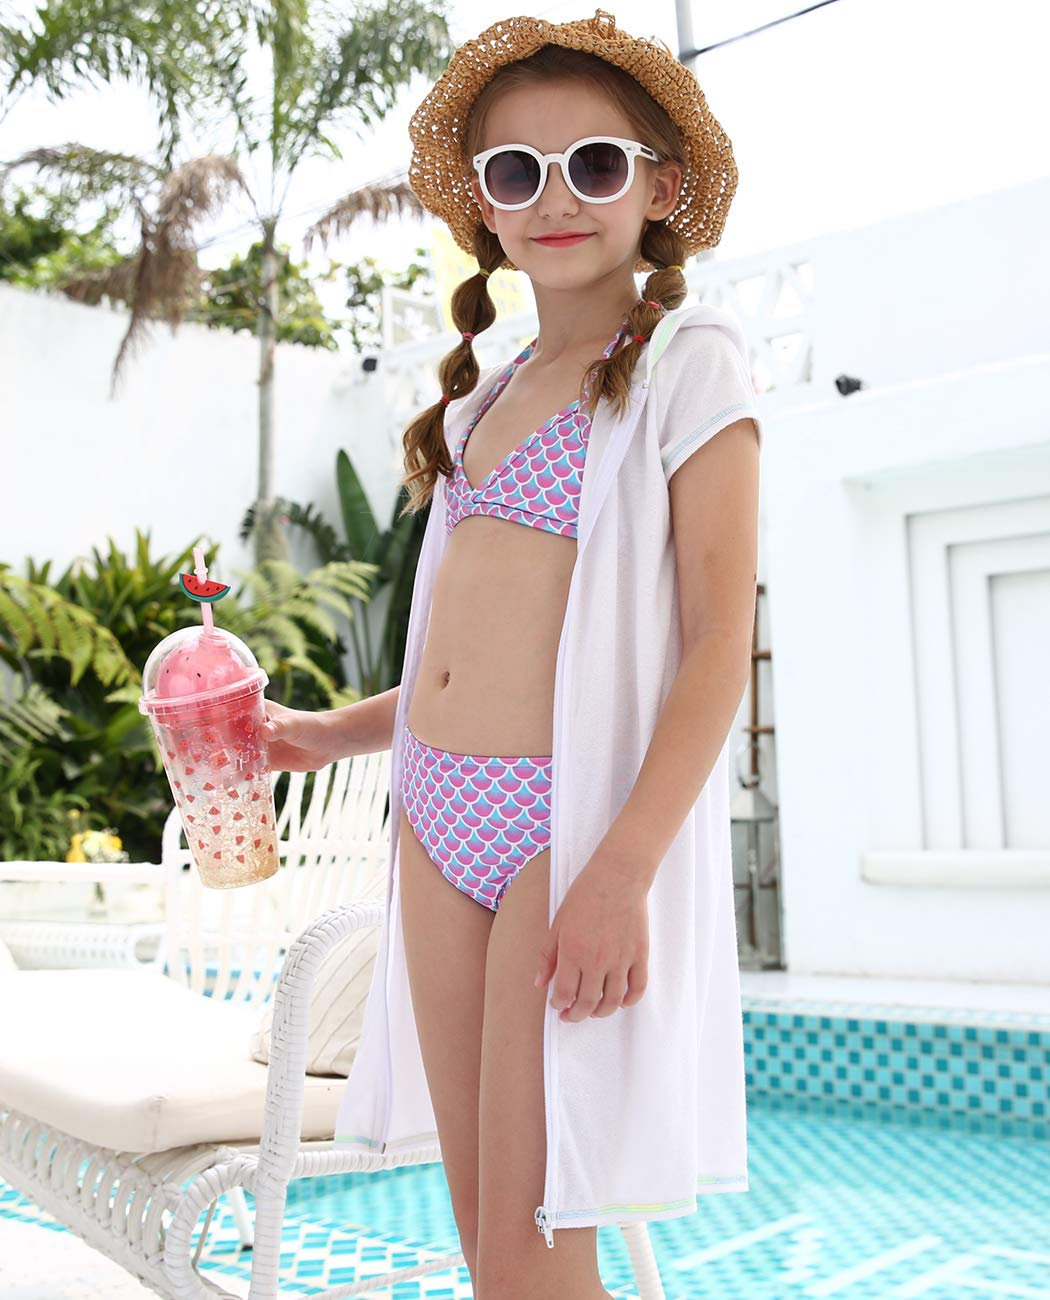 iDrawl Girls Kids Hooded Beach Towel Cover-up Soft Colorful Striped Bath Swim Cover Ups for Age 8 to 16